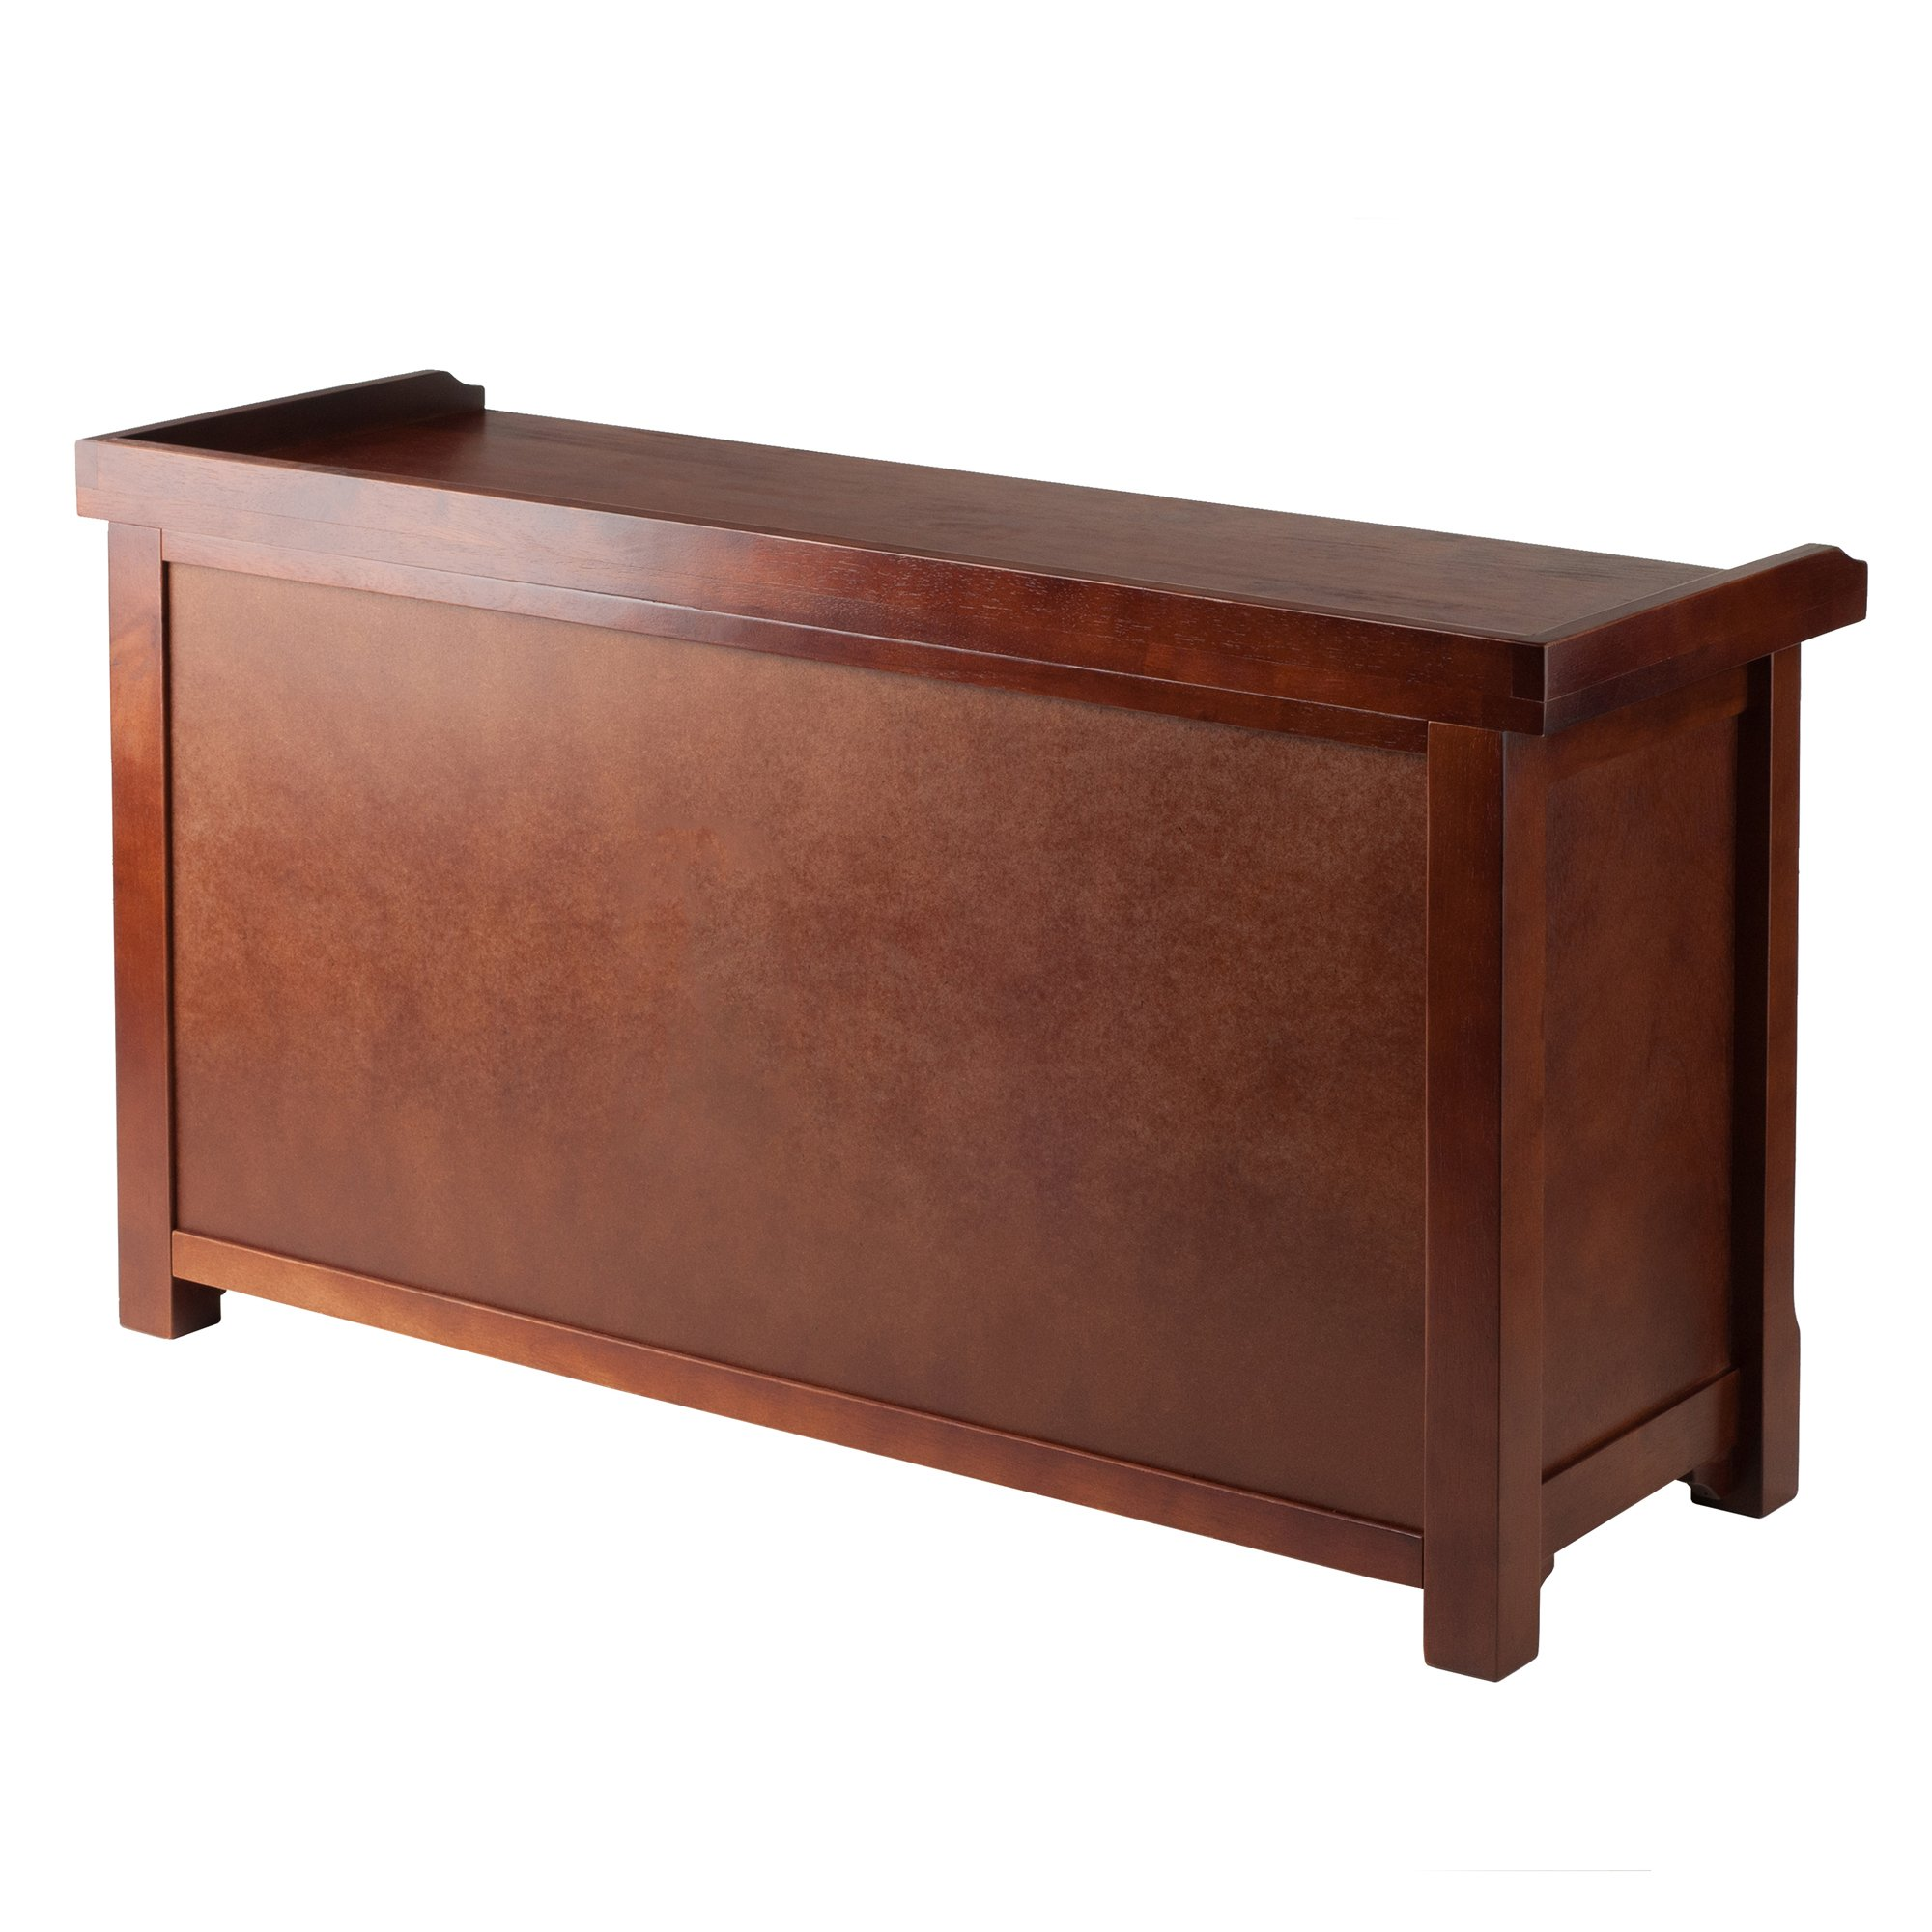 Winsome Wood Storage Hall Bench